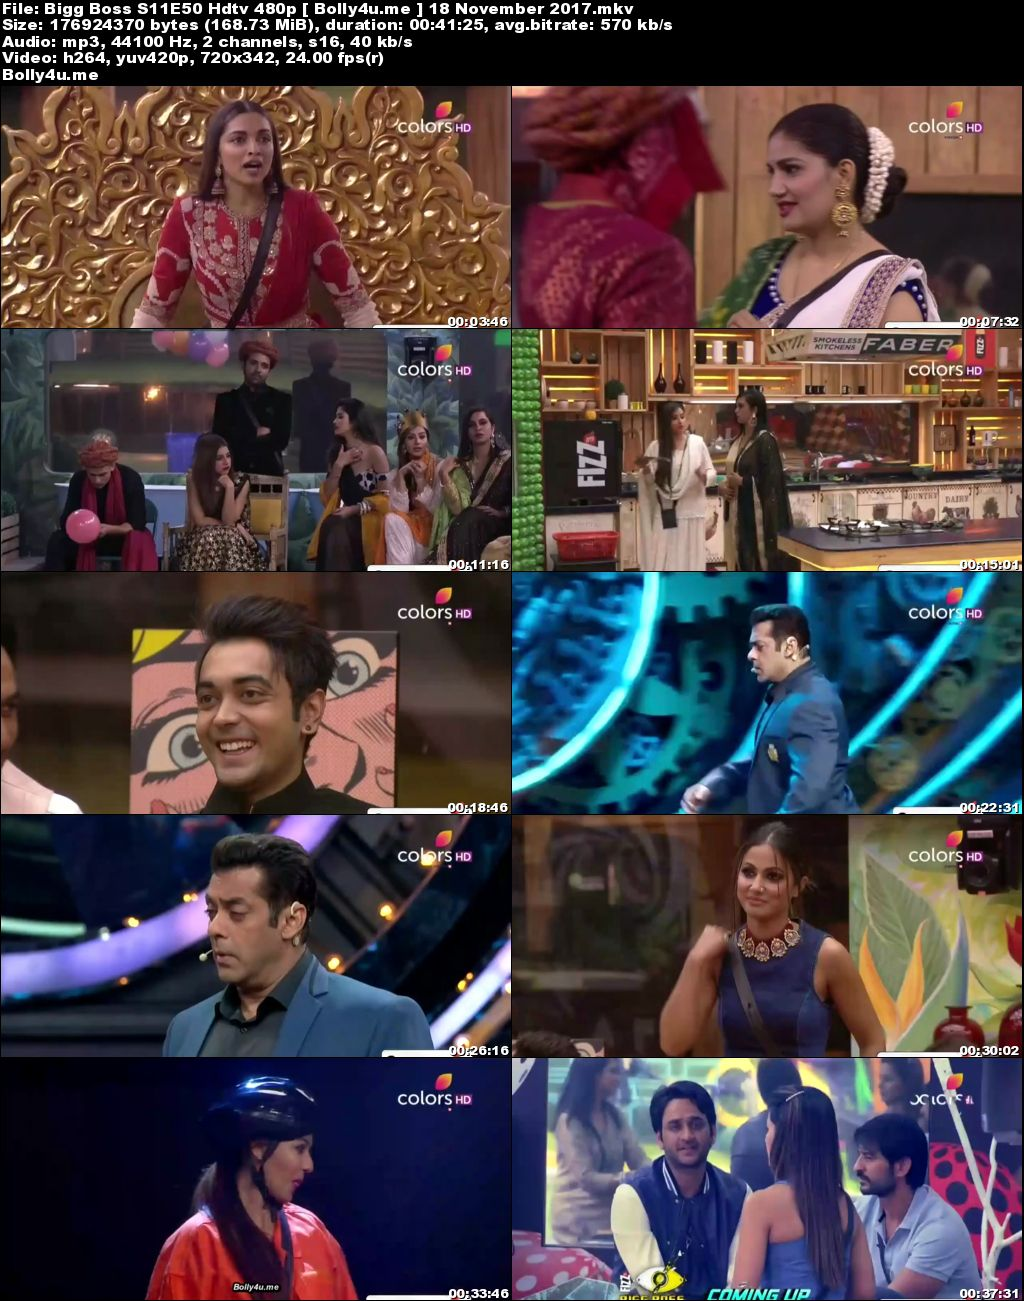 Bigg Boss S11E50 HDTV 170MB 480p 19 November 2017 Download